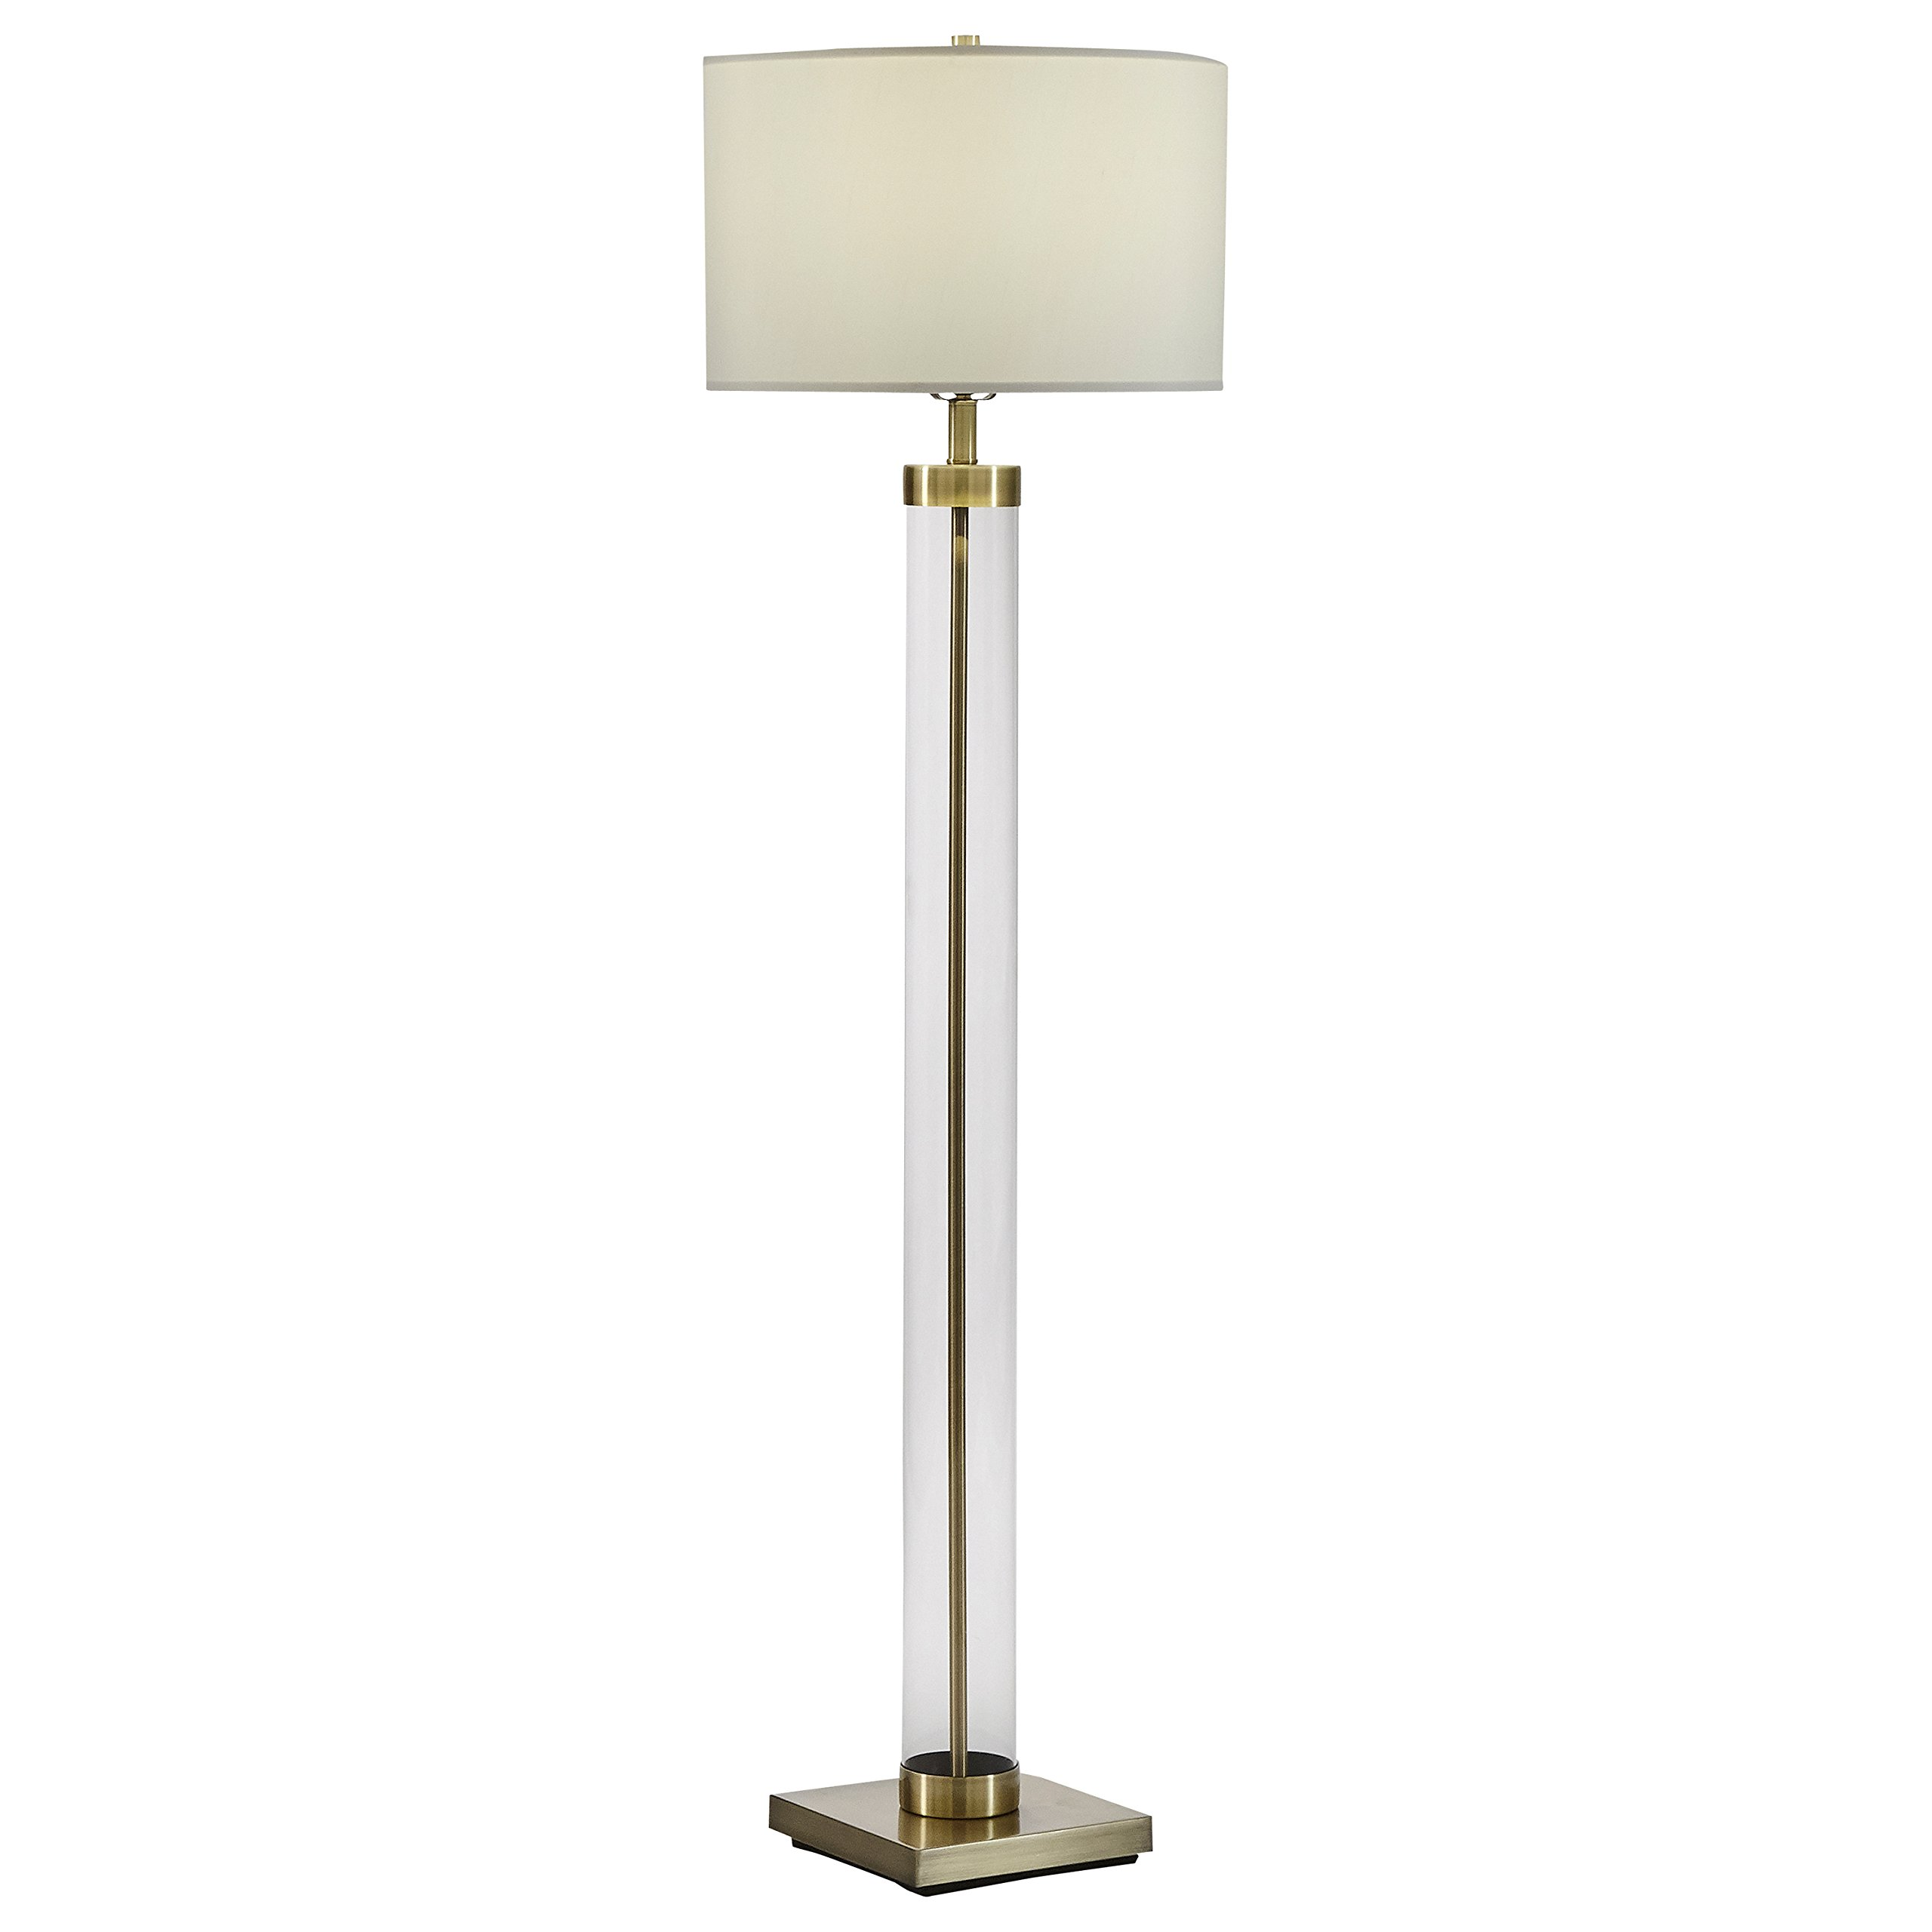 Stone & Beam Glass Column Brass Floor Lamp, 59''H, With Bulb, Linen Shade by Stone & Beam